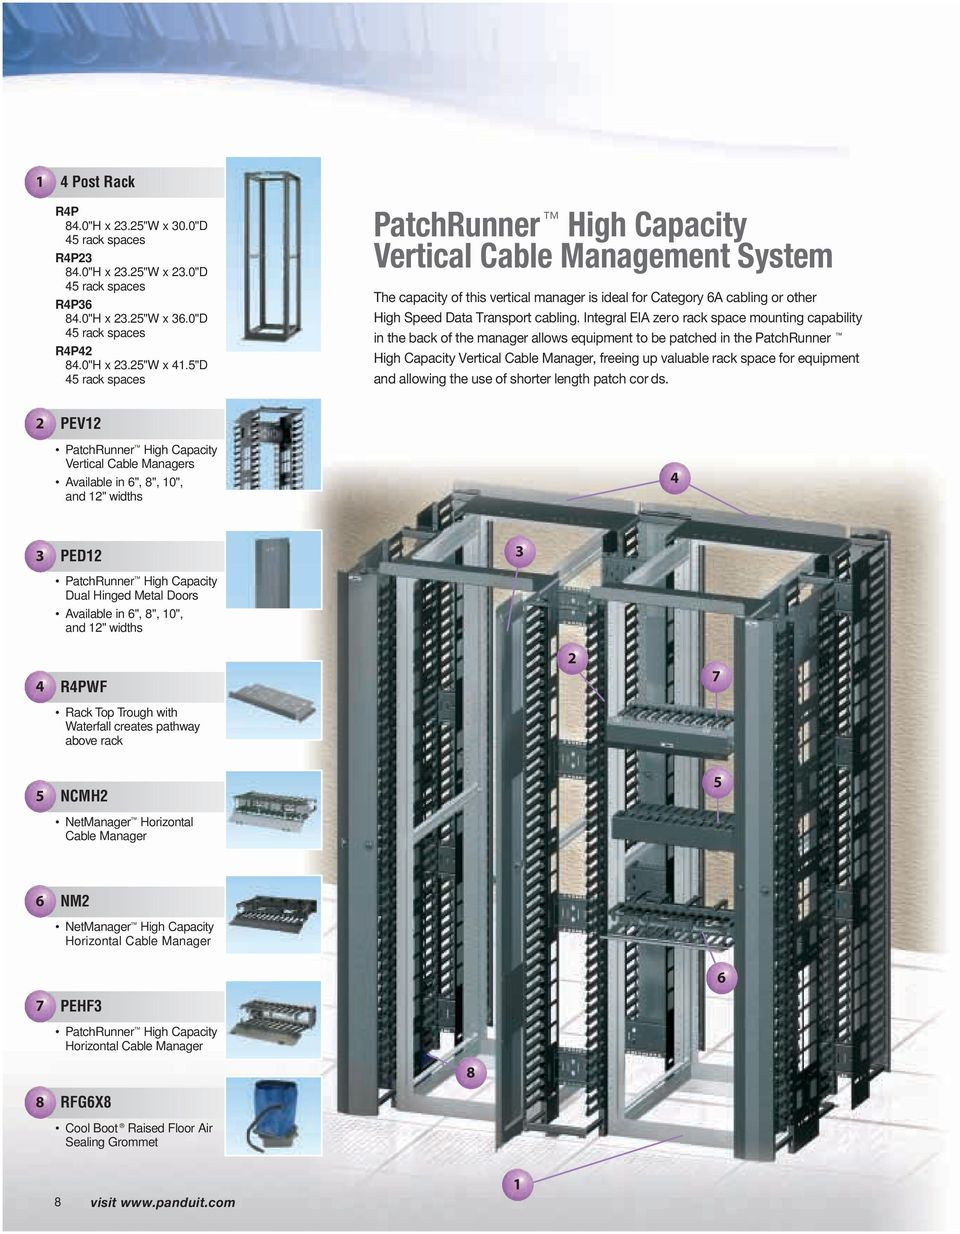 Integral EIA zero rack space mounting capability in the back of the manager allows equipment to be patched in the PatchRunner High Capacity Vertical Cable Manager, freeing up valuable rack space for